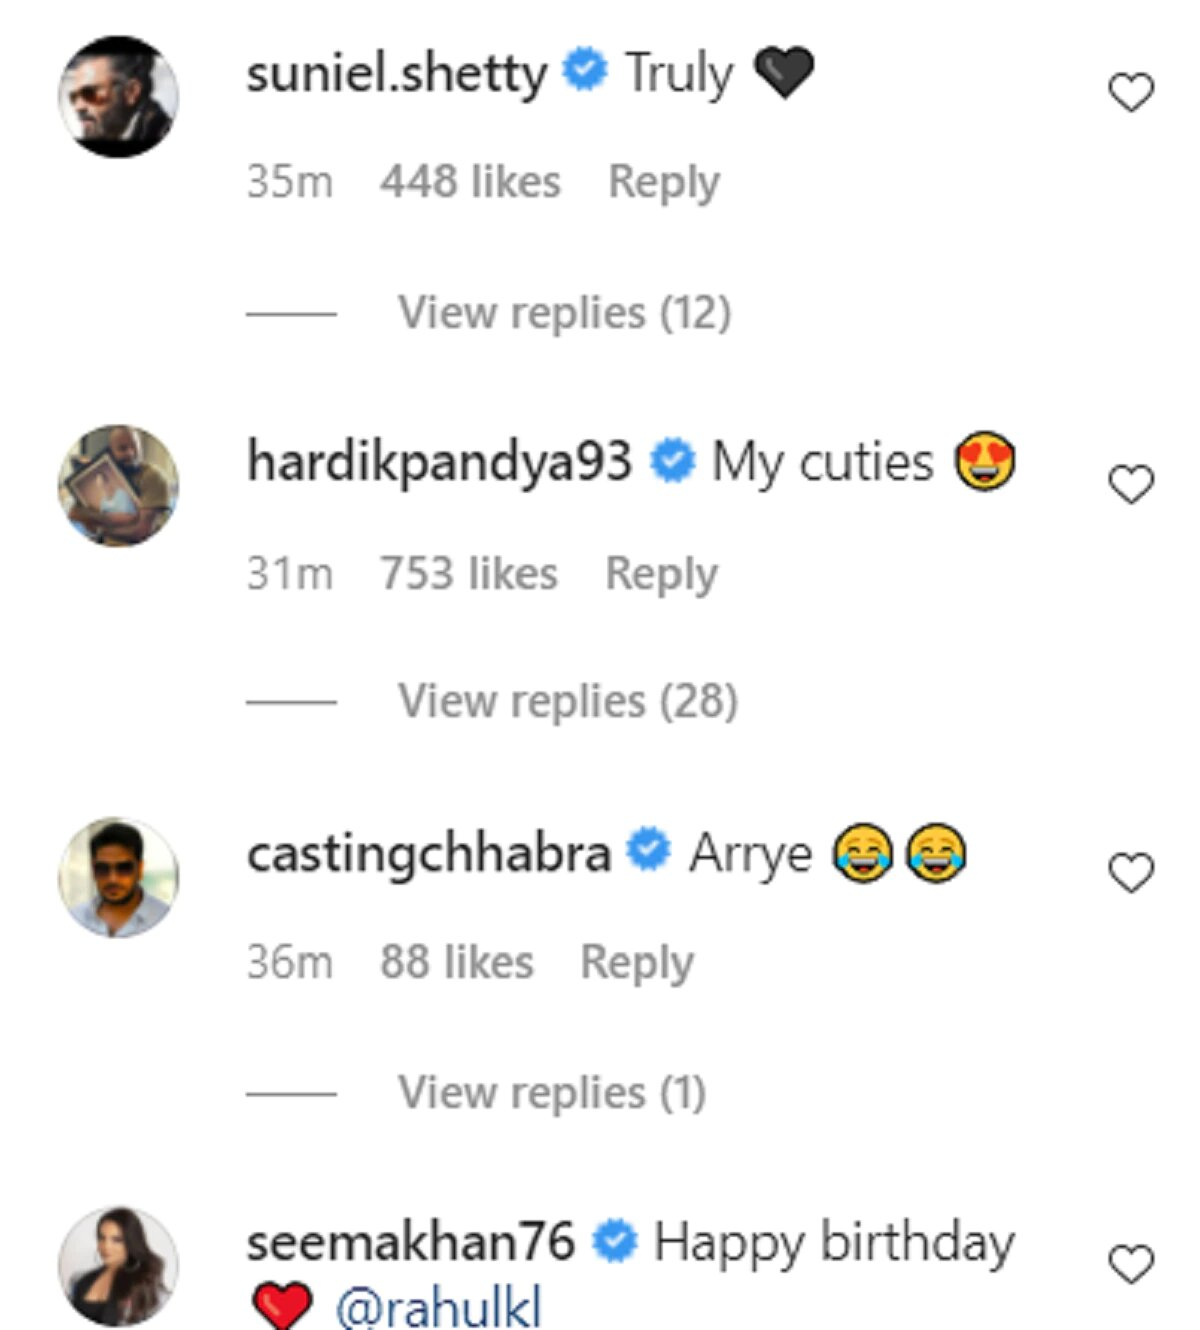 suniel shetty comment on athiya shetty wish to KL rahul